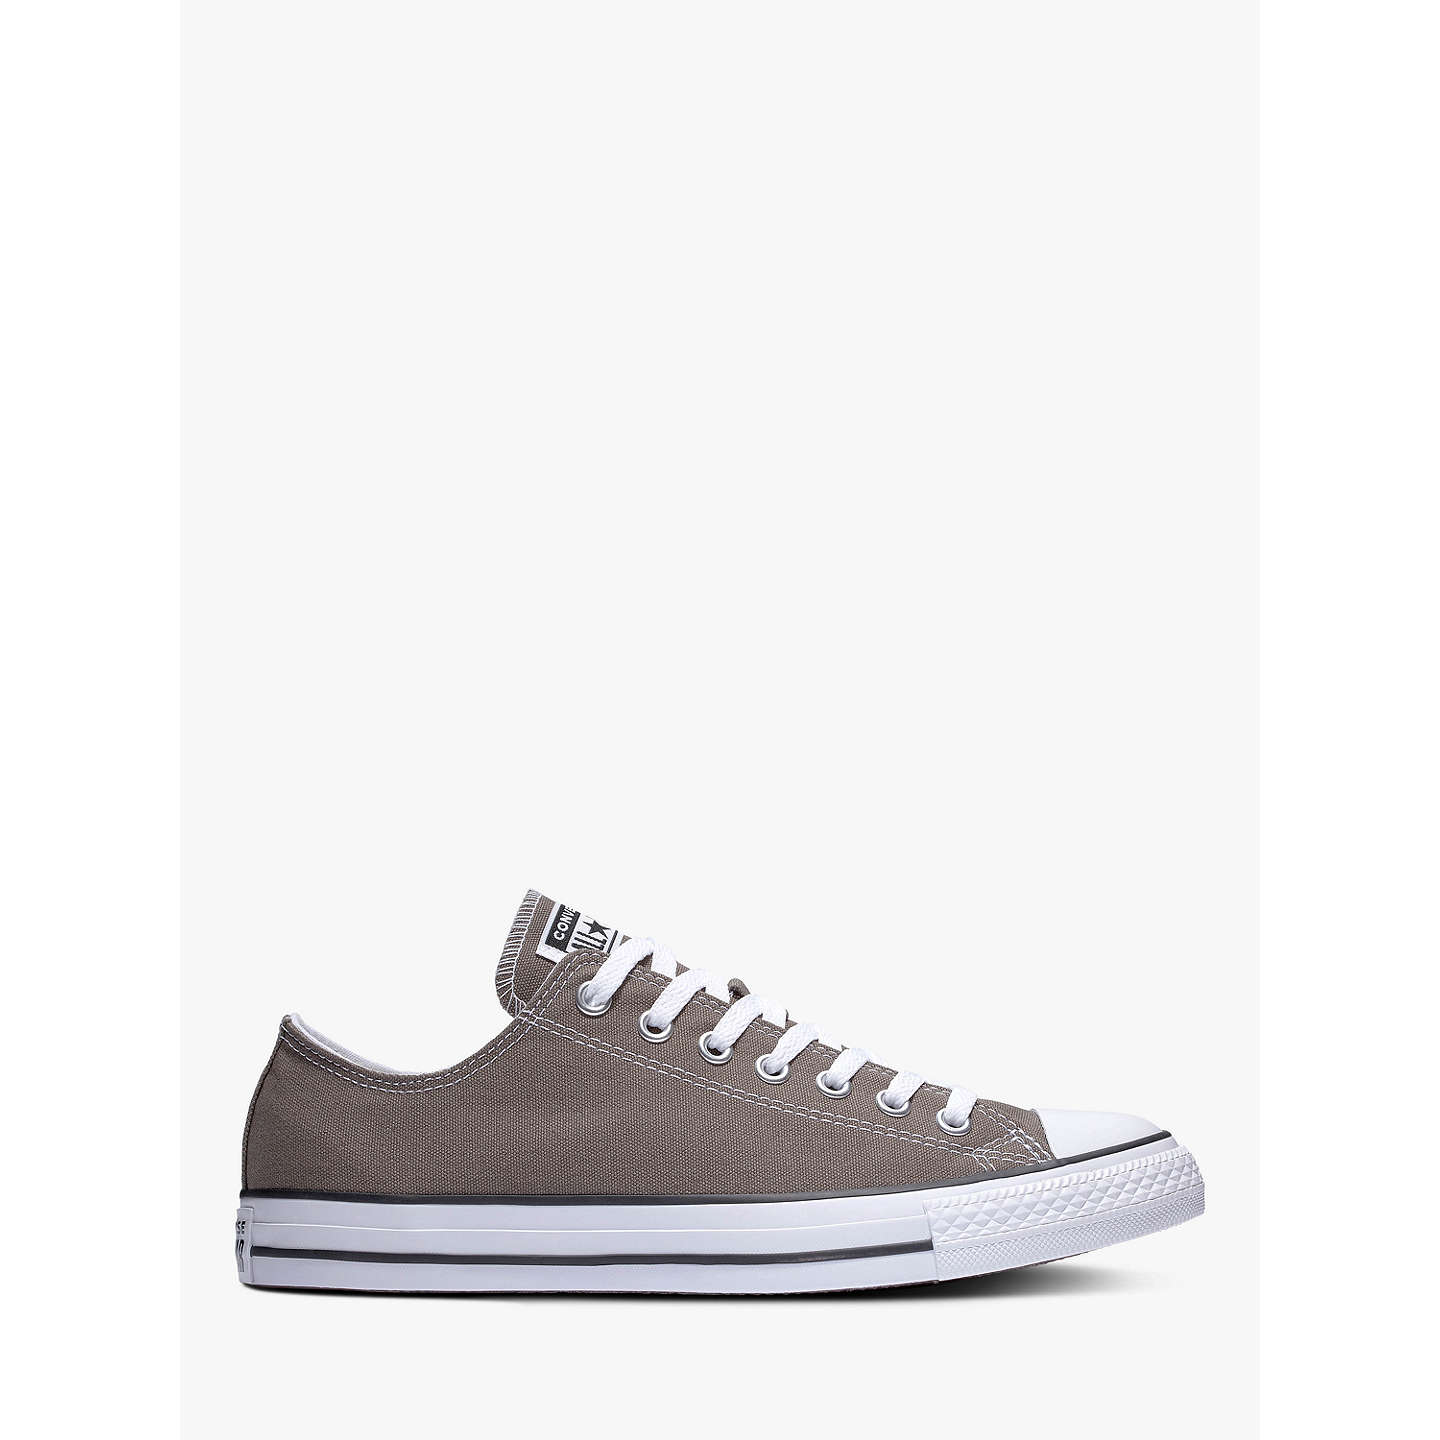 BuyConverse Chuck Taylor All Star Canvas Ox Low-Top Trainers, Charcoal, 7 Online at johnlewis.com